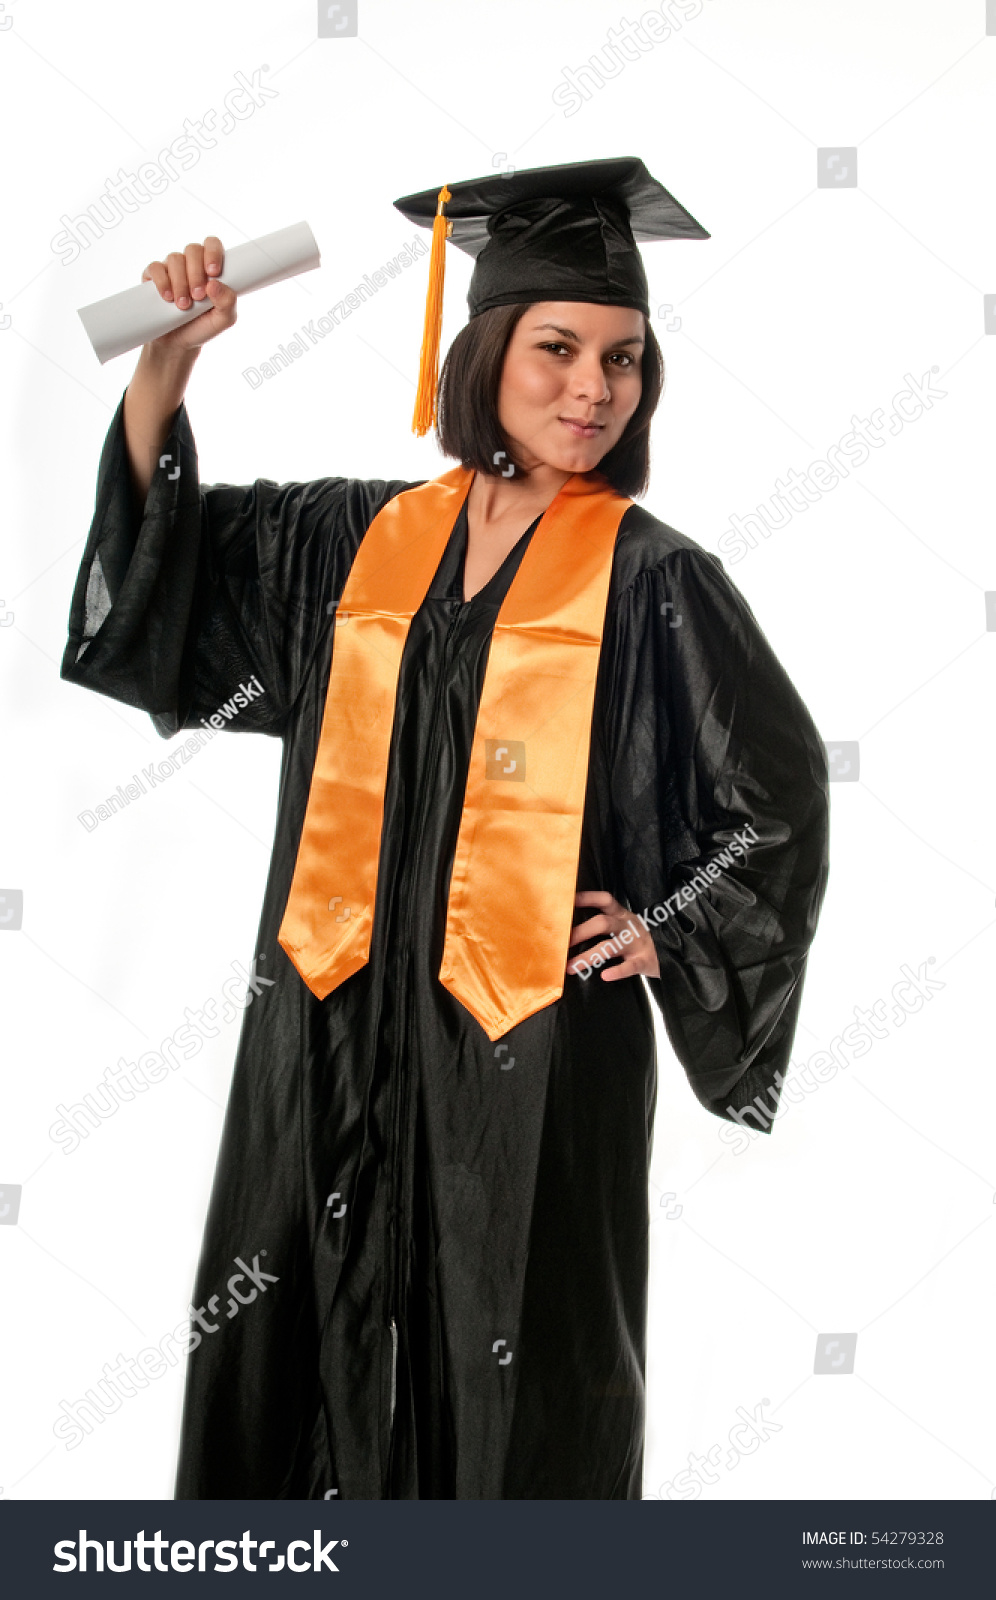 Portrait Young Girl Graduation Gown Diploma Stock Photo (Royalty ...